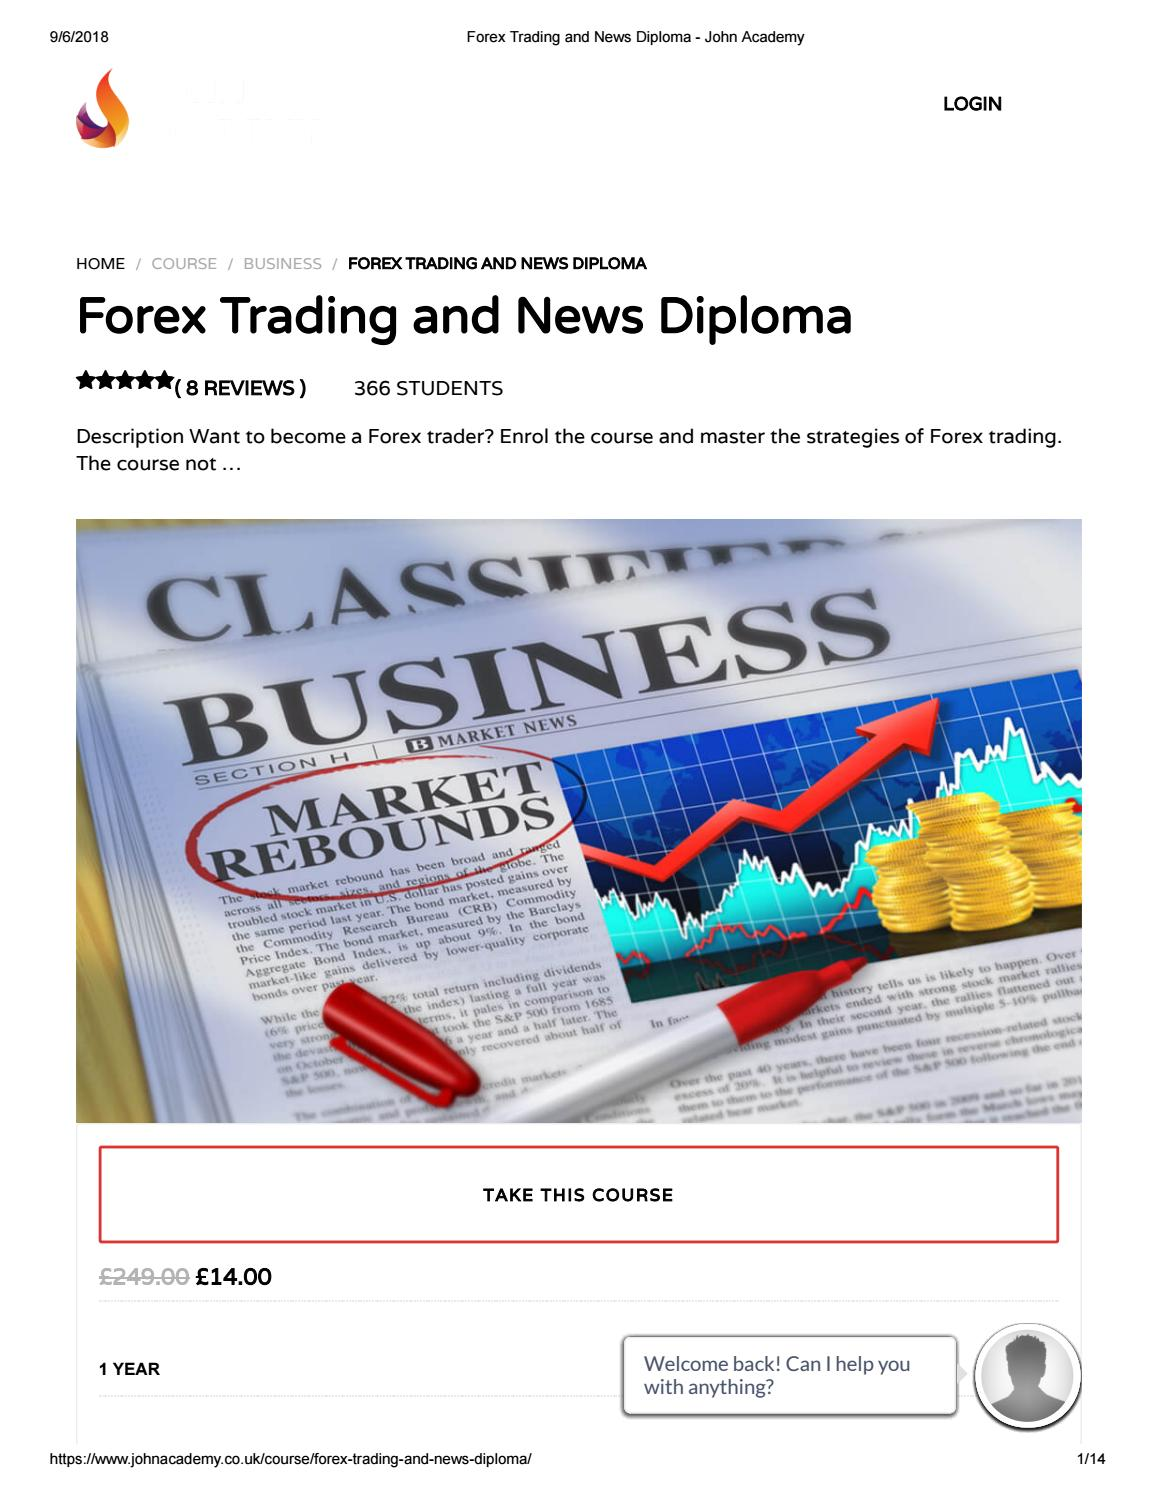 Forex trading reviews news